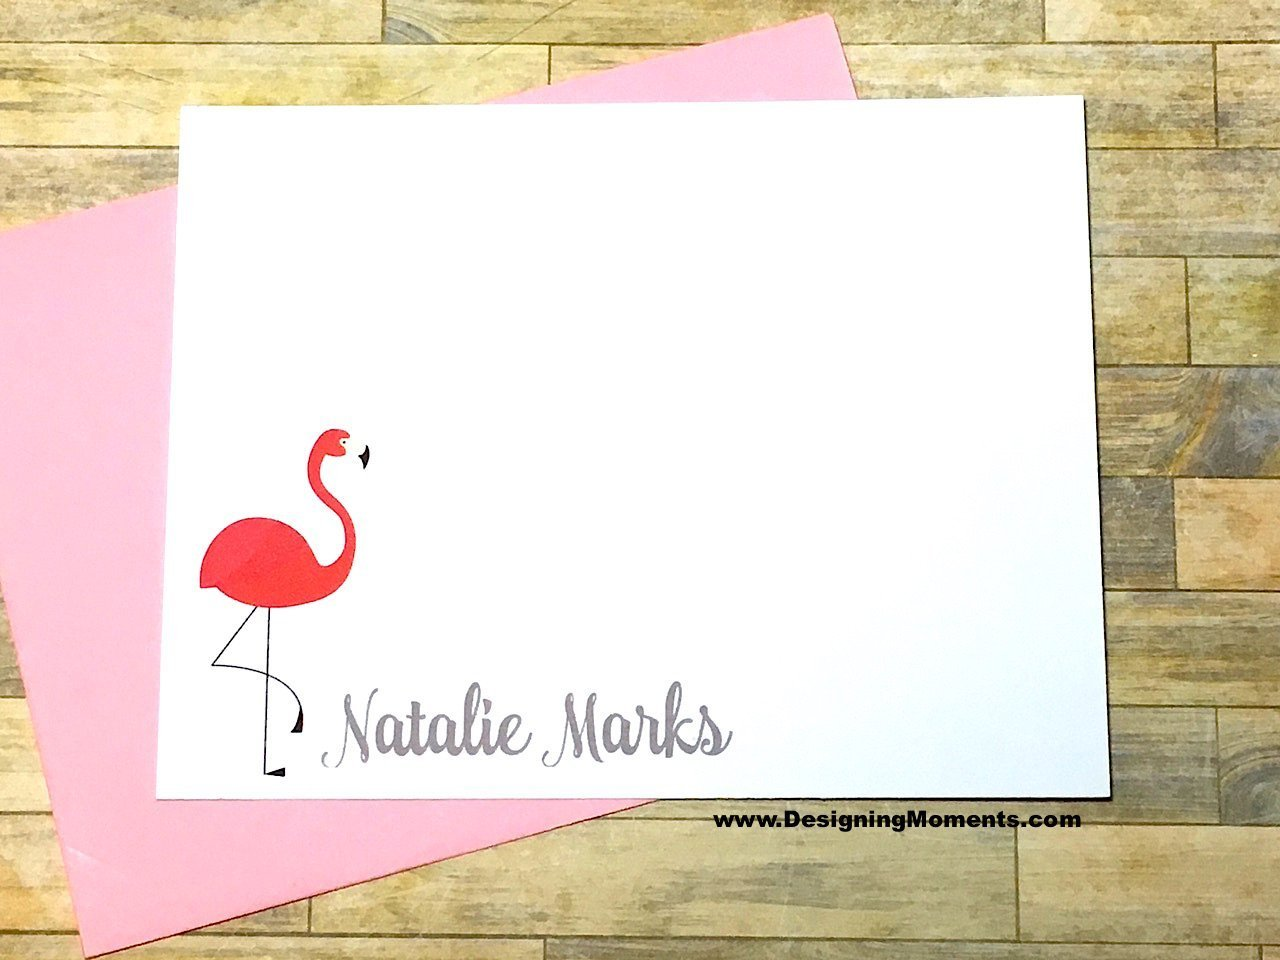 Pink Flamingo Note Cards - Personalized Stationery - Flamingo Cards - Thank You Cards - Kids Stationary - Flat Cards DM217